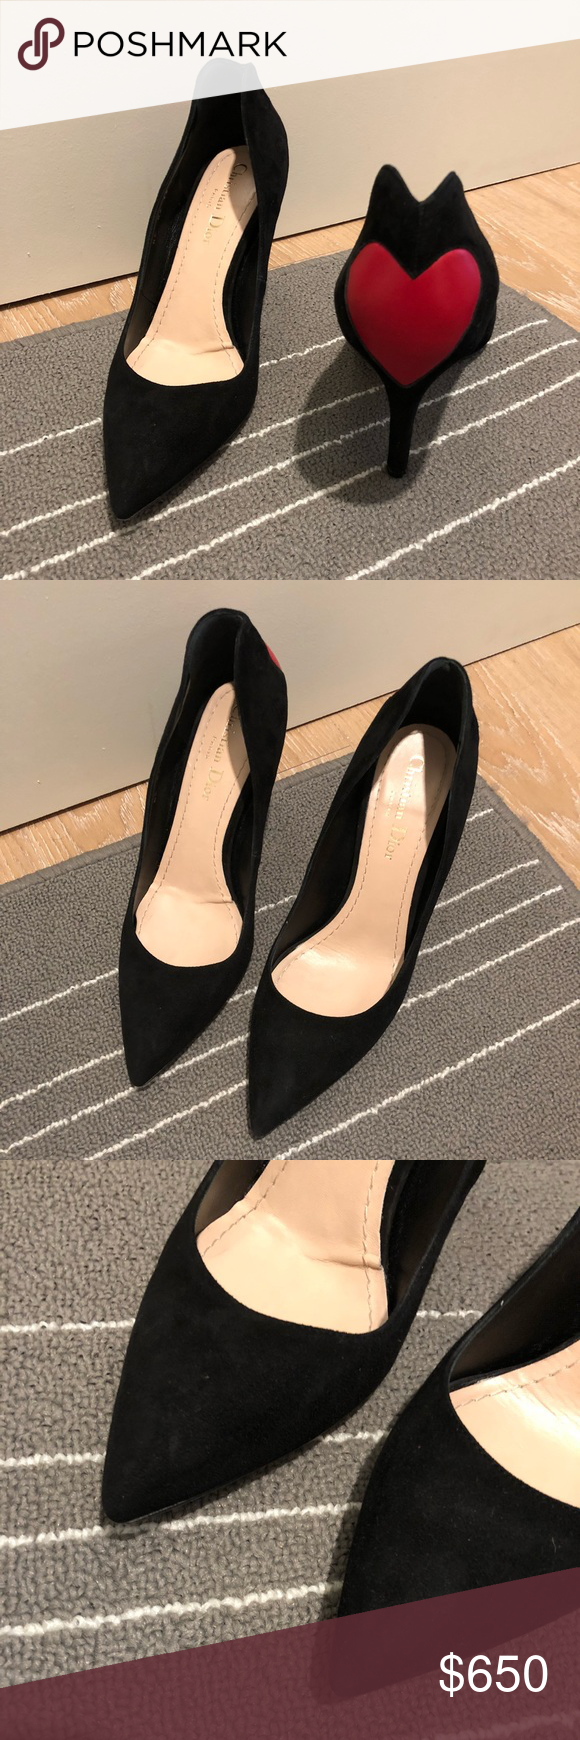 9e5dfd559 Christian Dior Black Heart Pumps 38 ❤ Beautiful black suede pumps from Christian  Dior. Has the adorable red heart on the back of heel.